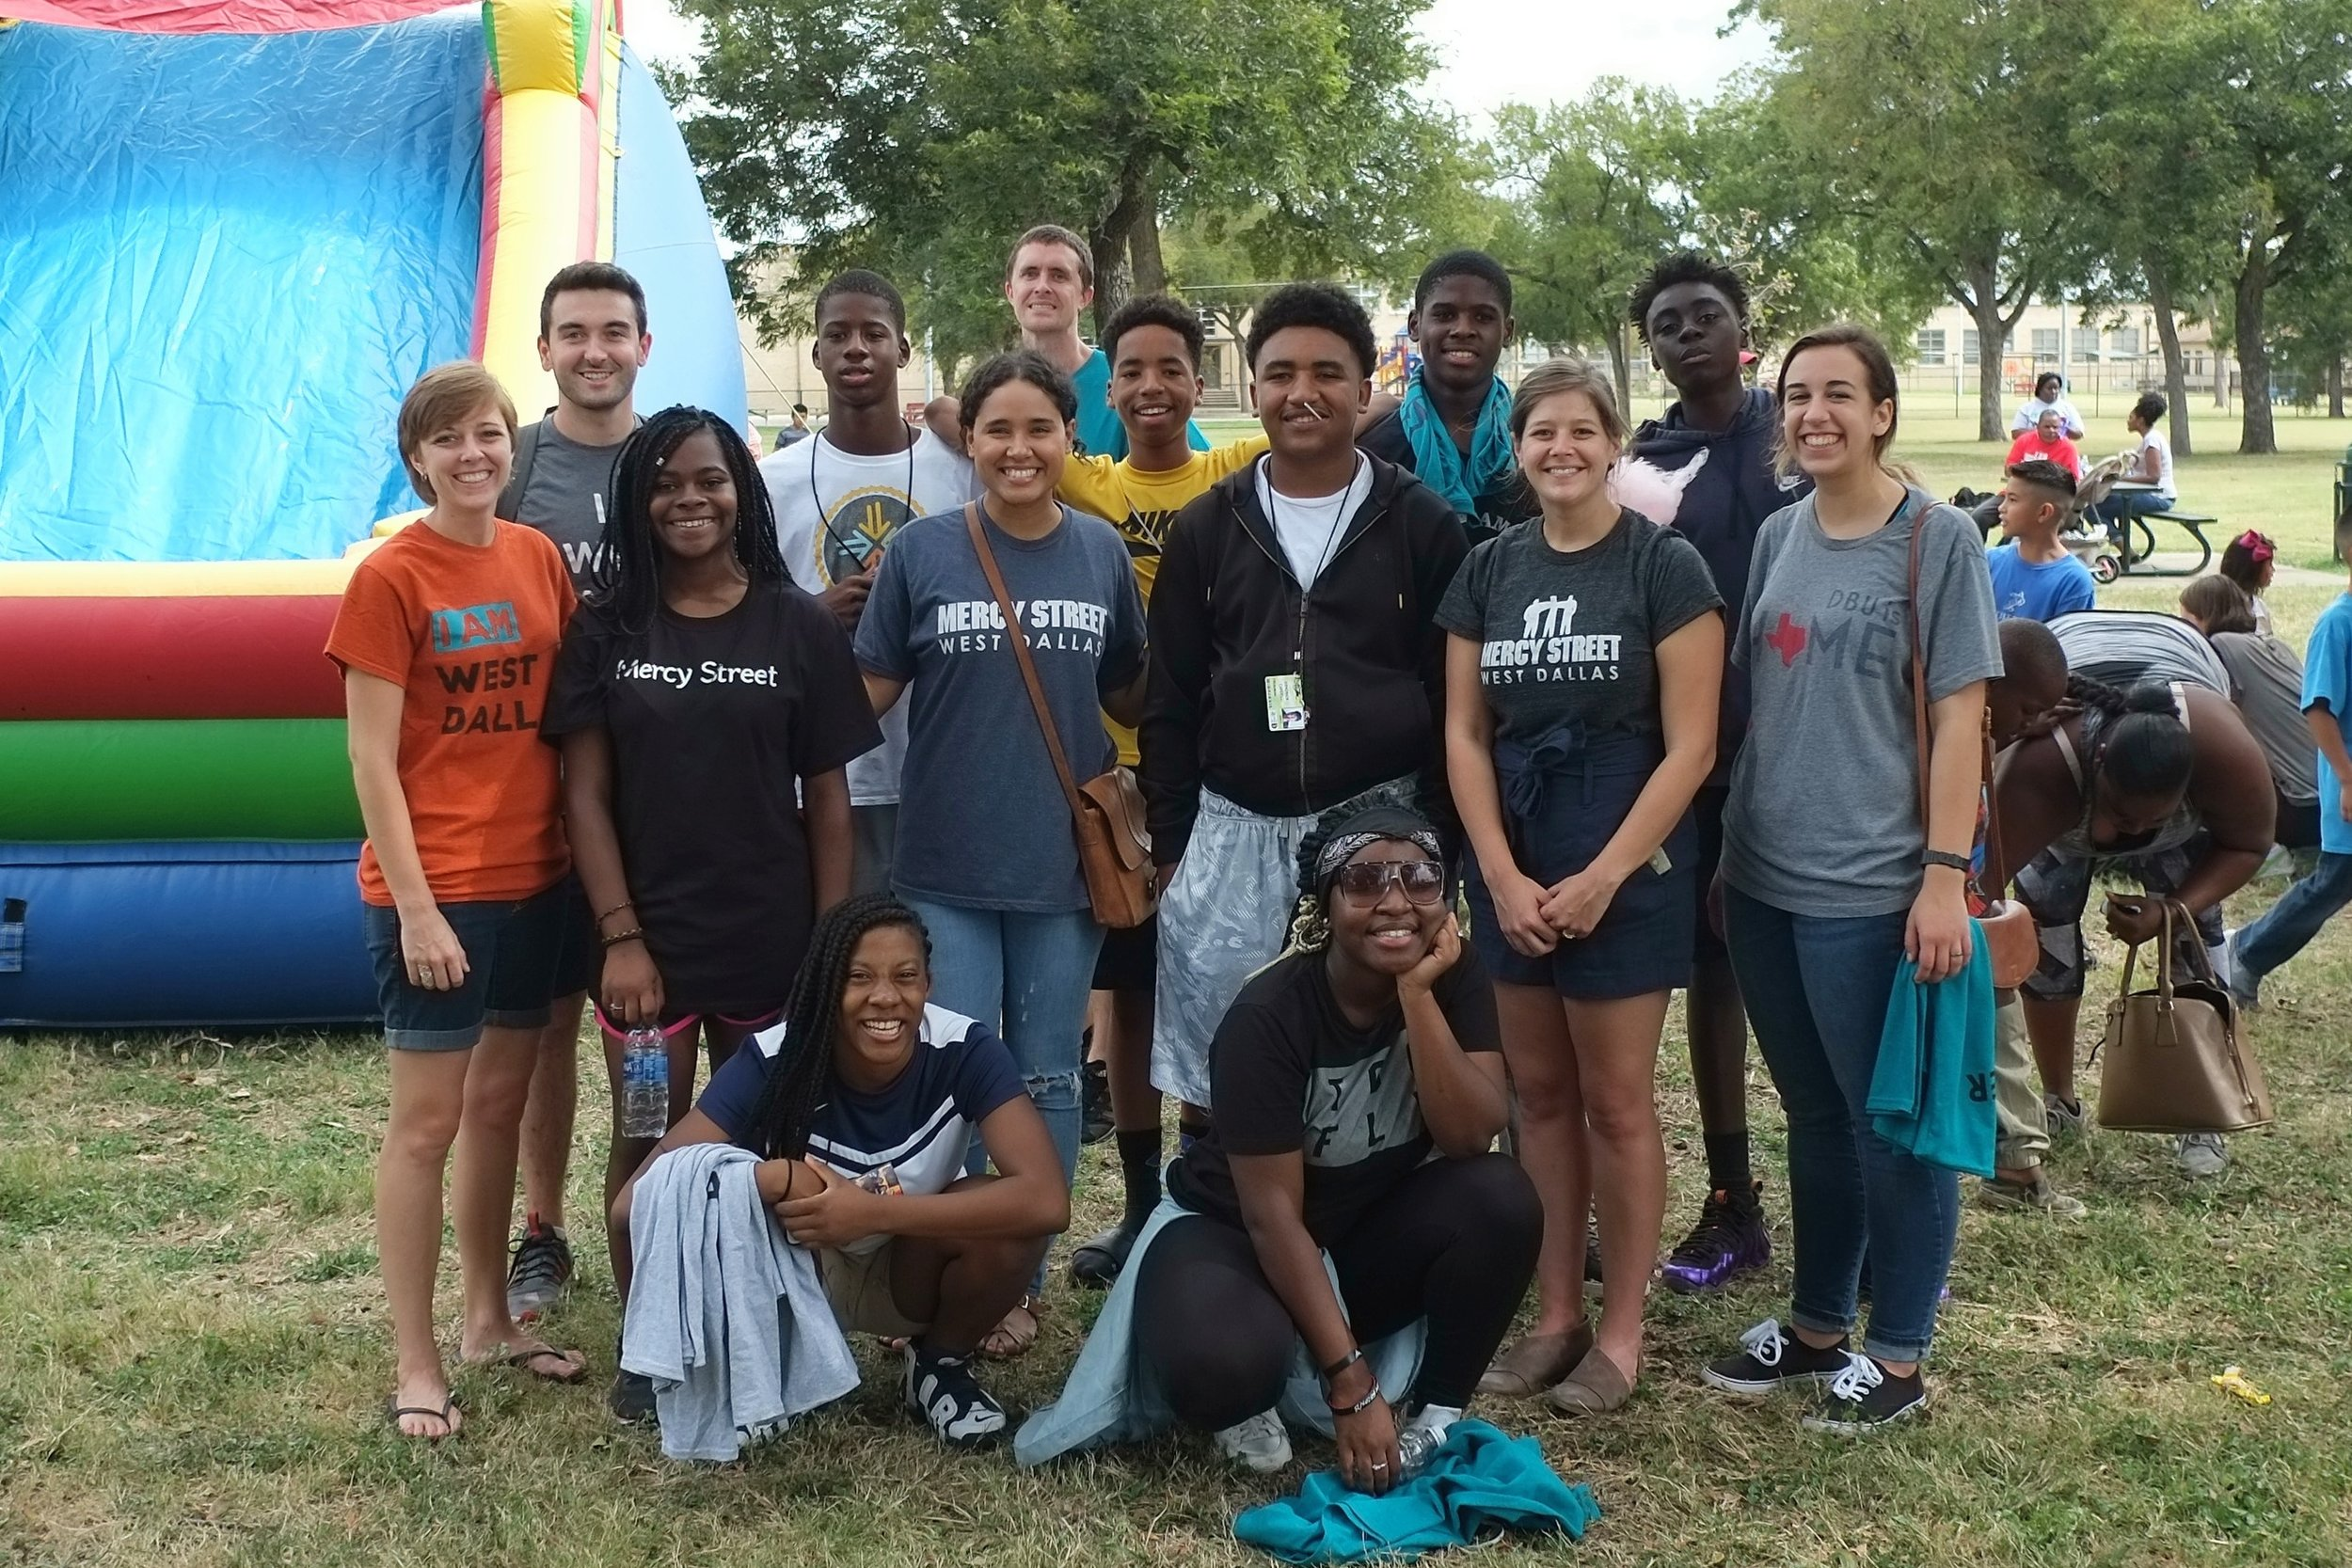 A group of Street Team students and leaders at West Dallas Day Out.